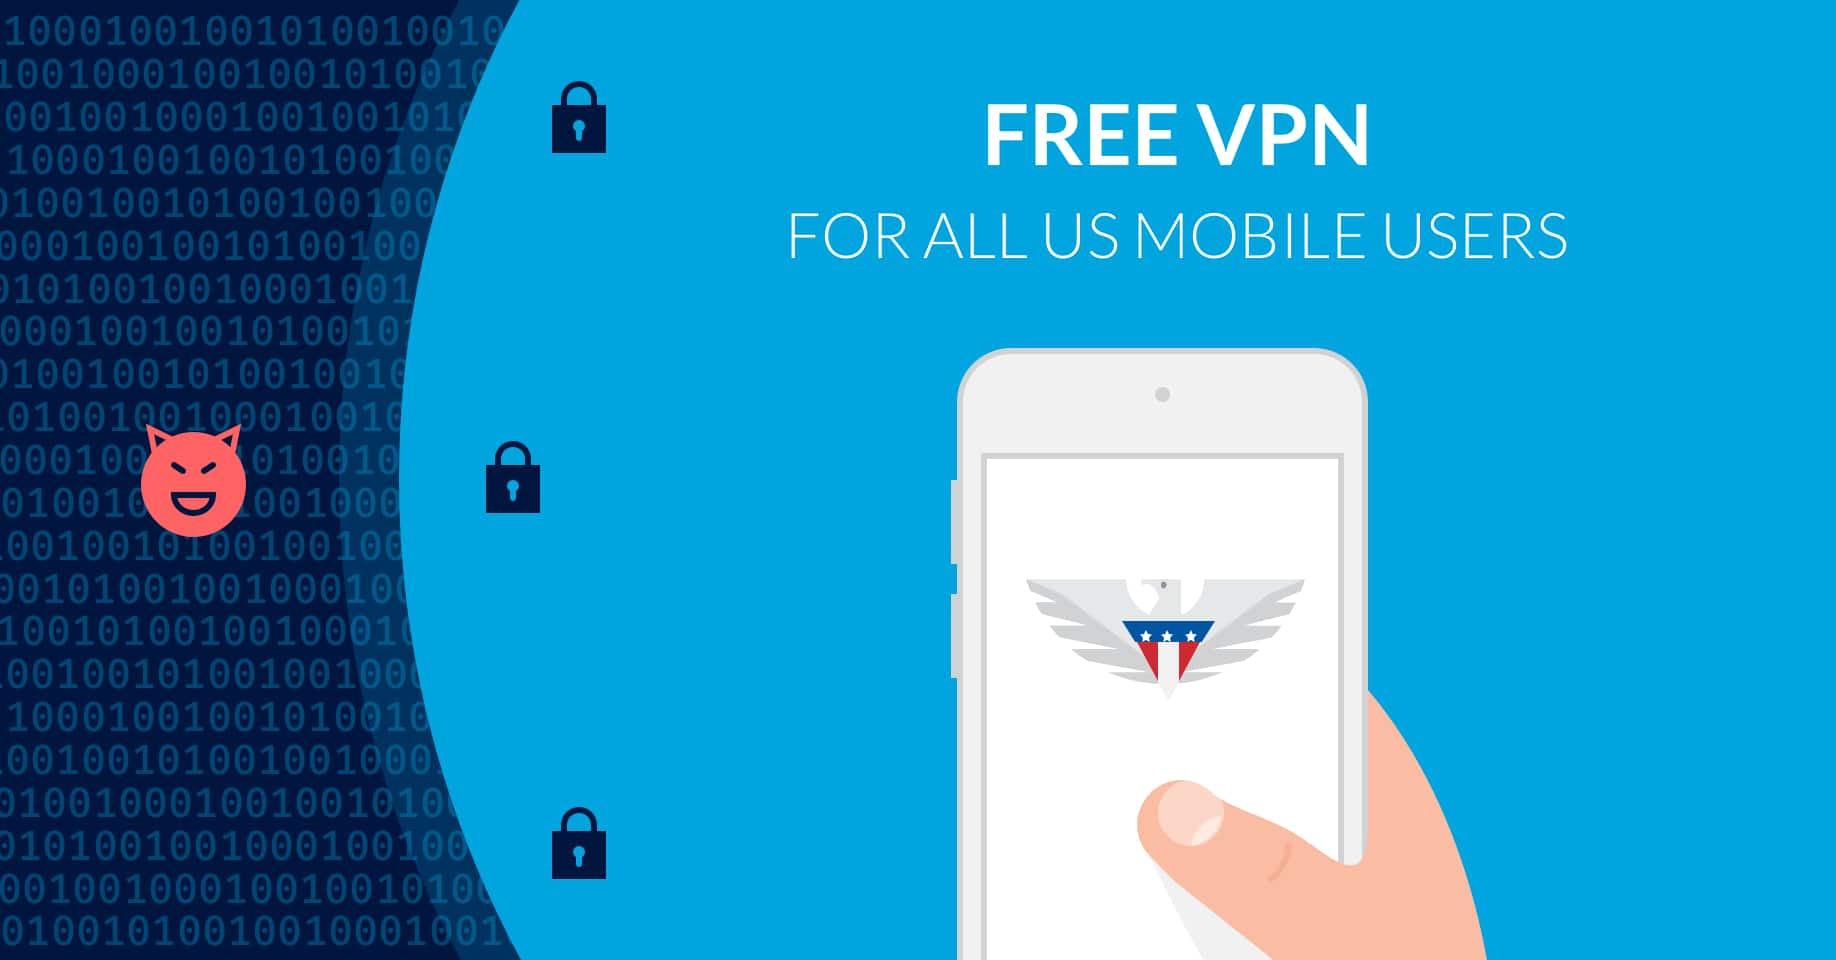 100GB/mo  VPN through WindScribe for US Mobile Customers